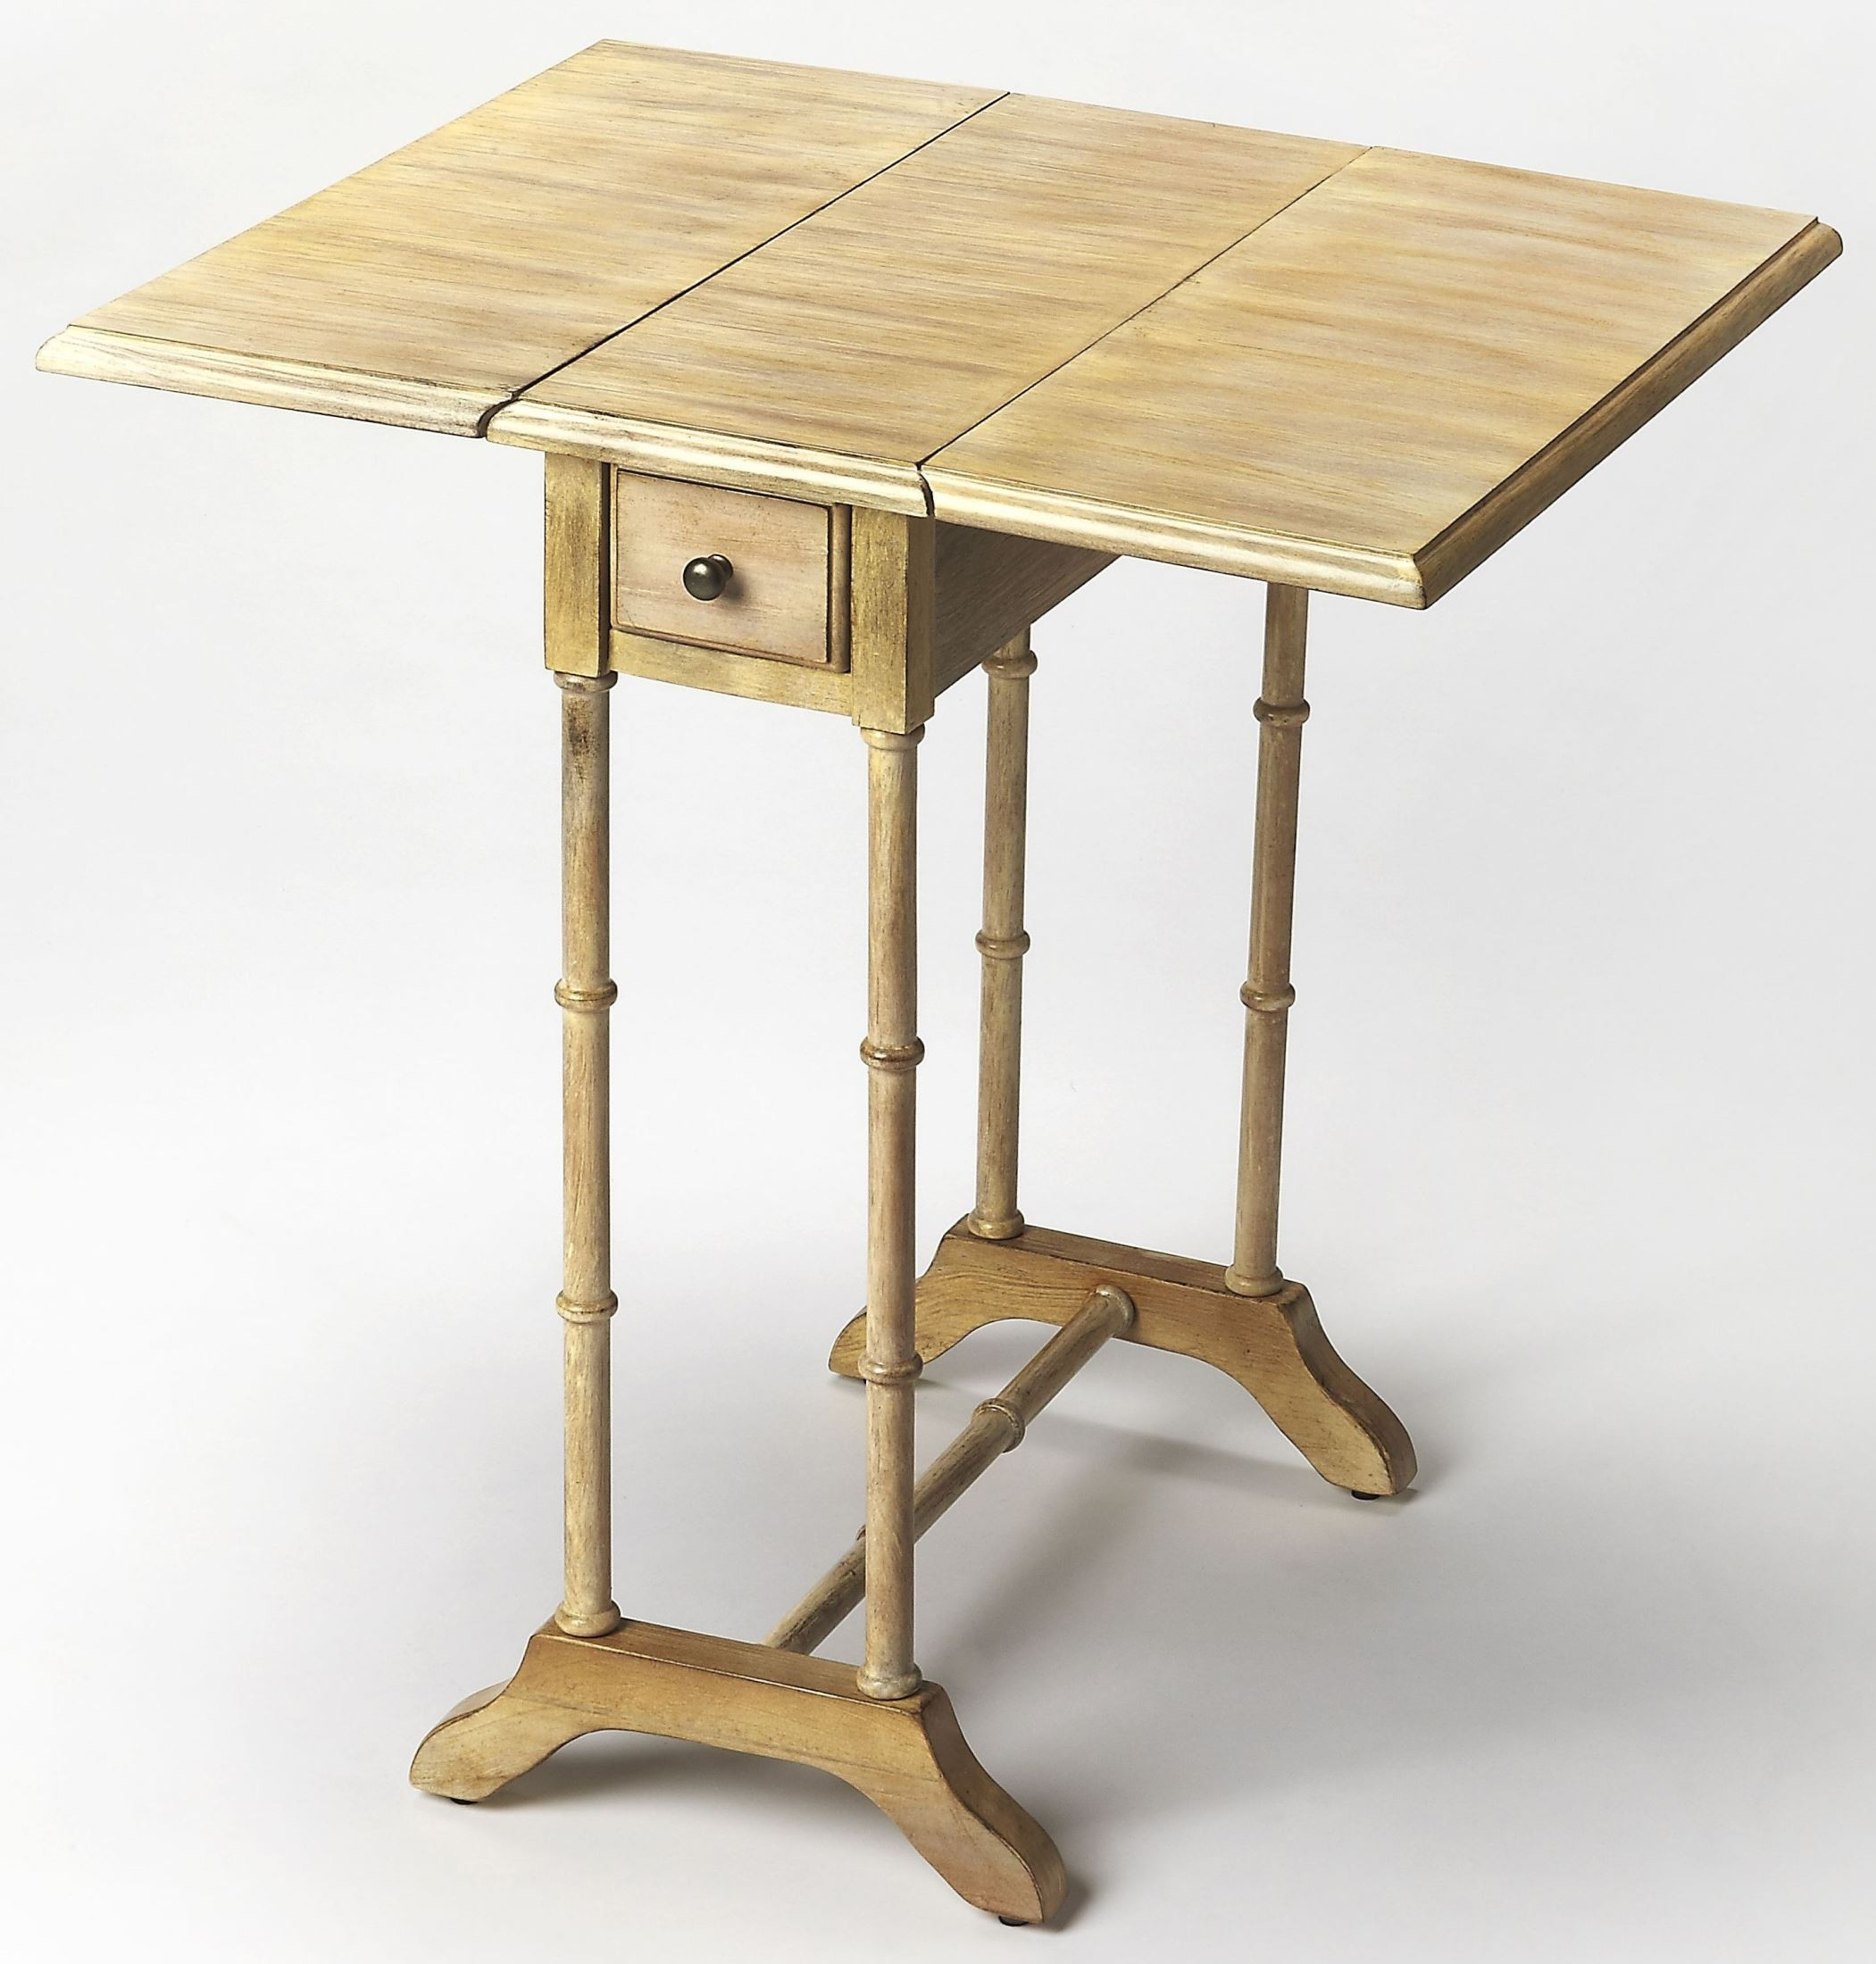 Driftwood End Table: Darrow Driftwood Drop Leaf End Table, 2334247, Butler